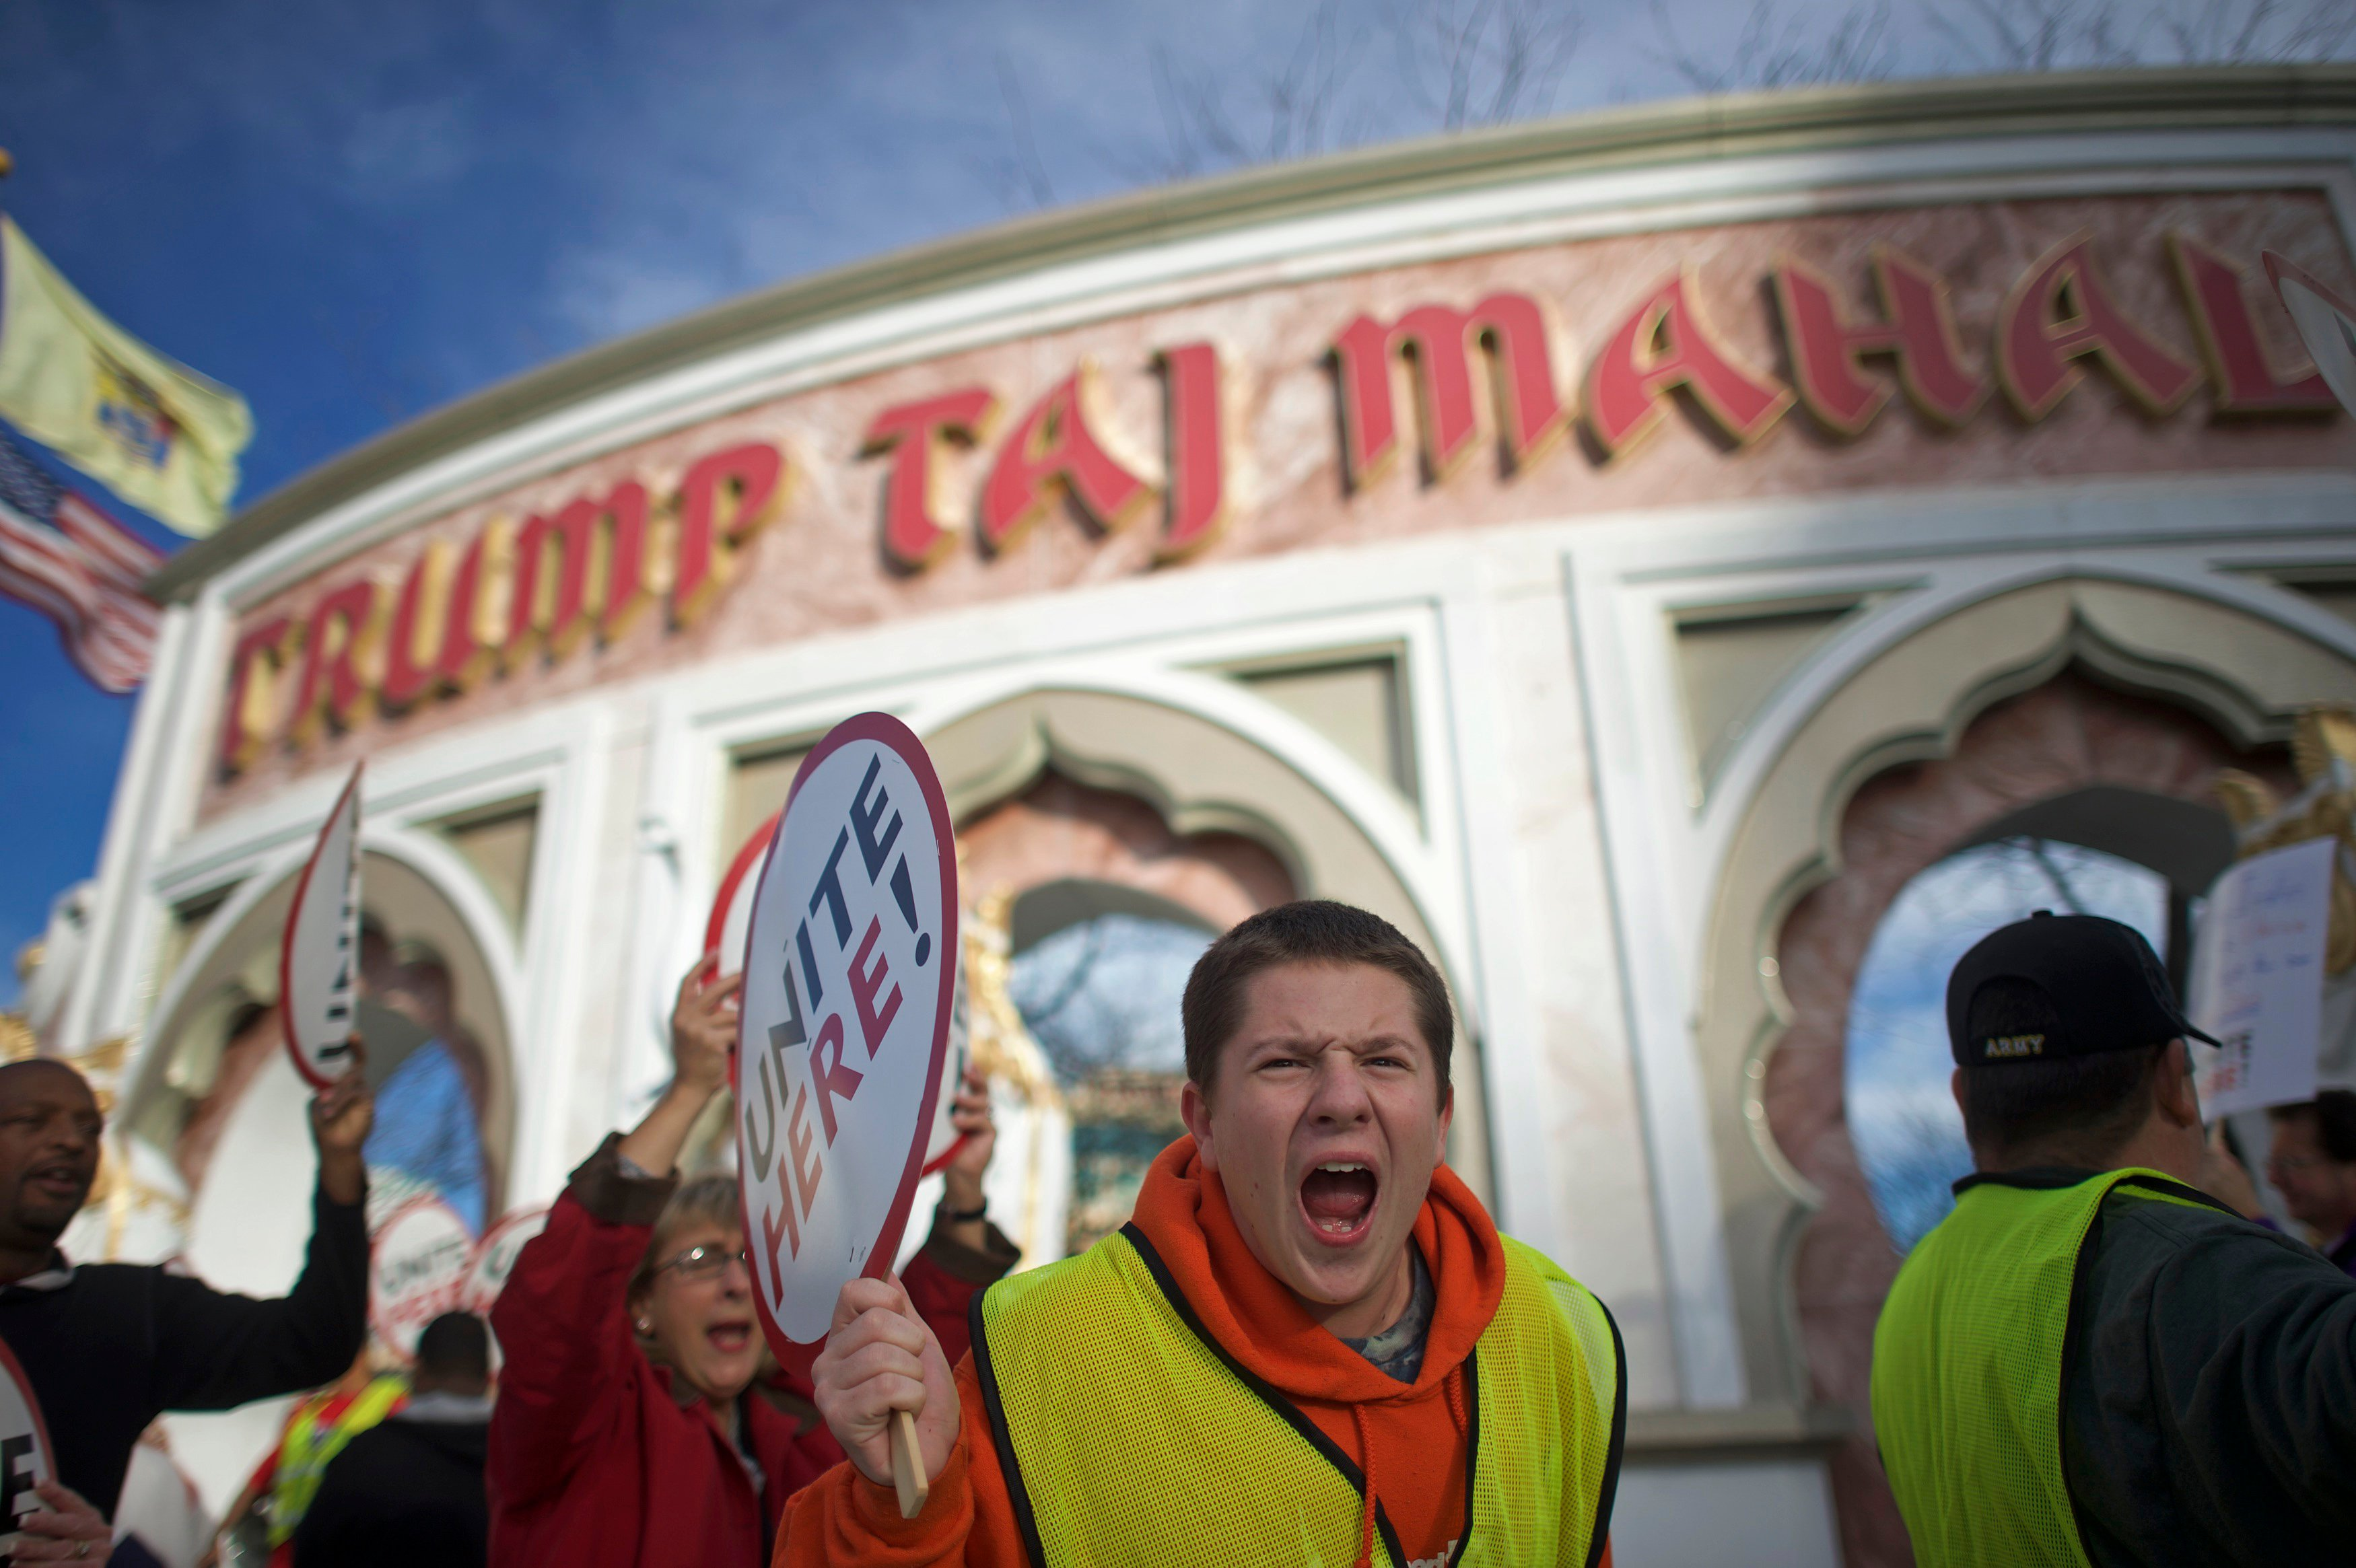 Union members from UNITE HERE Local 54 rally outside the Trump Taj Mahal Casino in Atlantic City, New Jersey